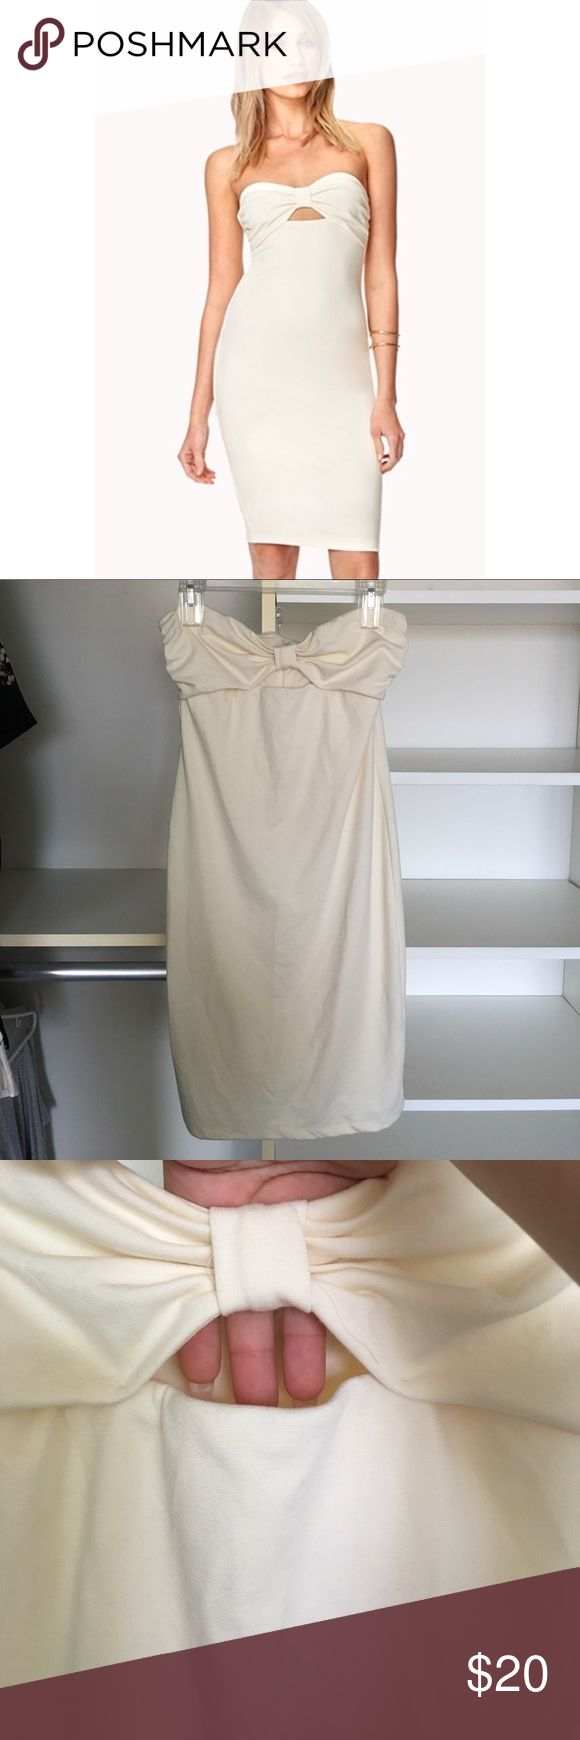 Forever 21 cream bow strapless bodycon dress Worn 1x! In excellent condition. Very sexy, bodycon dress. Peek a boo keyhole in front. Perfect for any occasion. Dress up or down. Needs a new home ❤️ Forever 21 Dresses Strapless